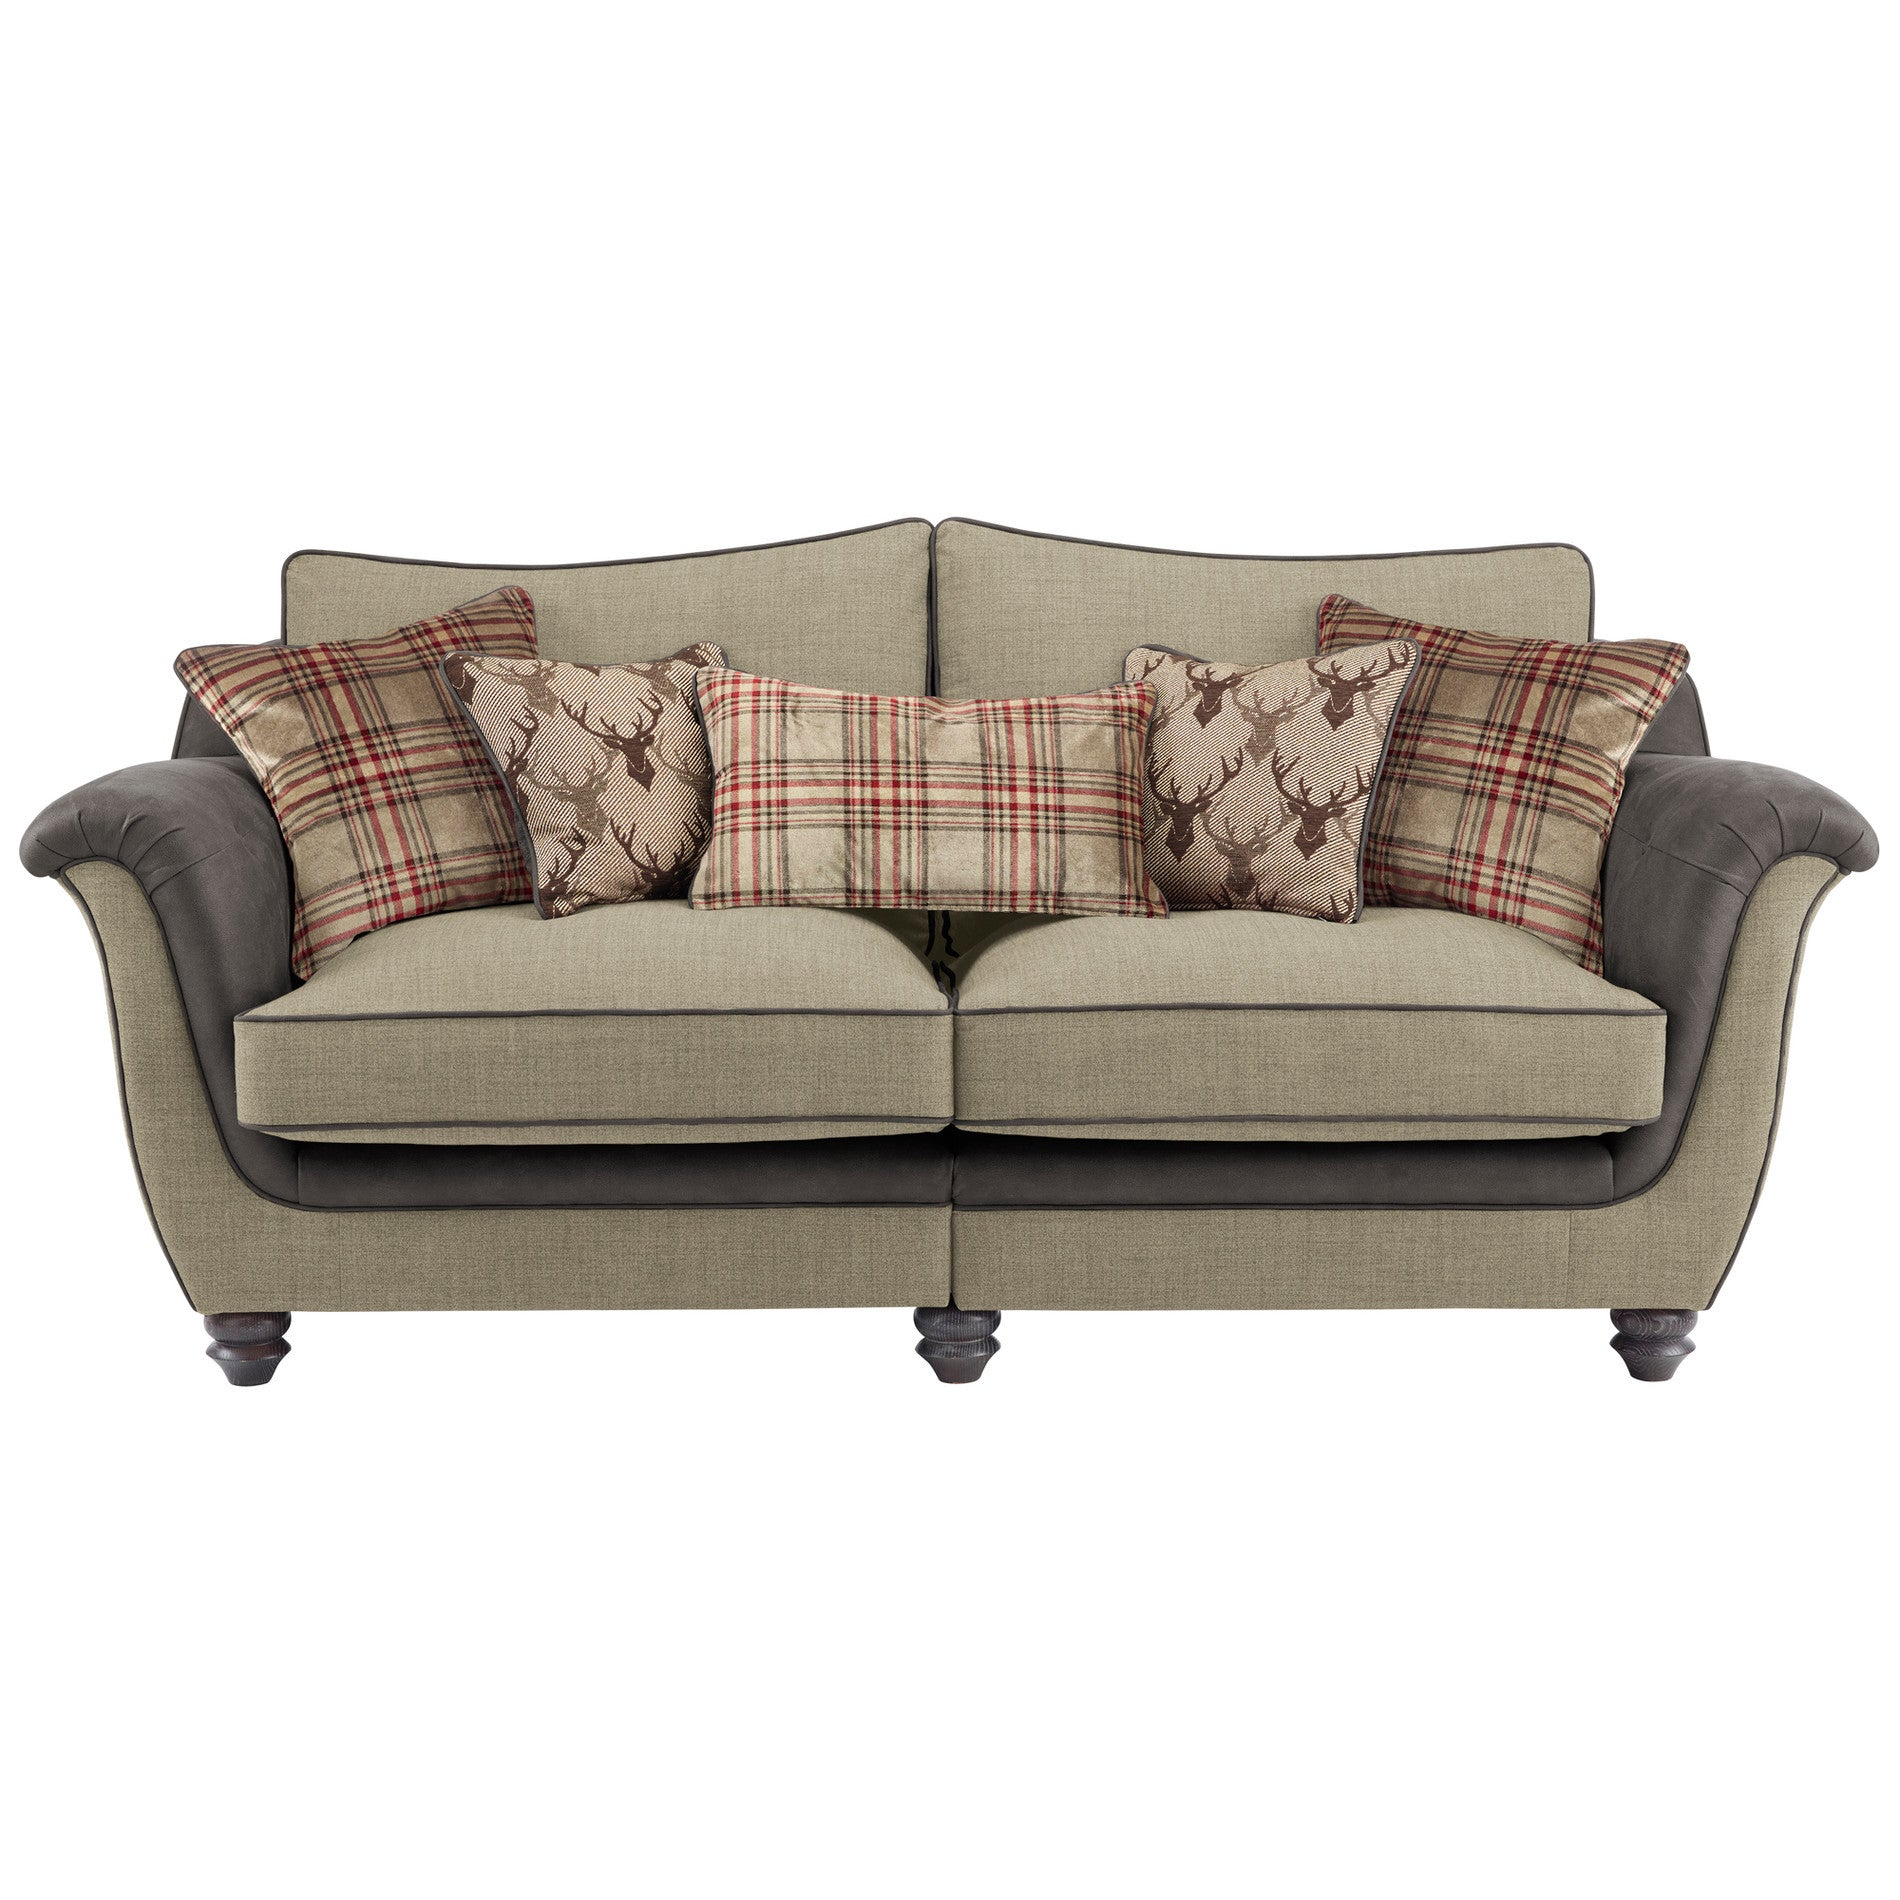 Galloway High Back Sofa in Blyth Fabric Beige with Mink